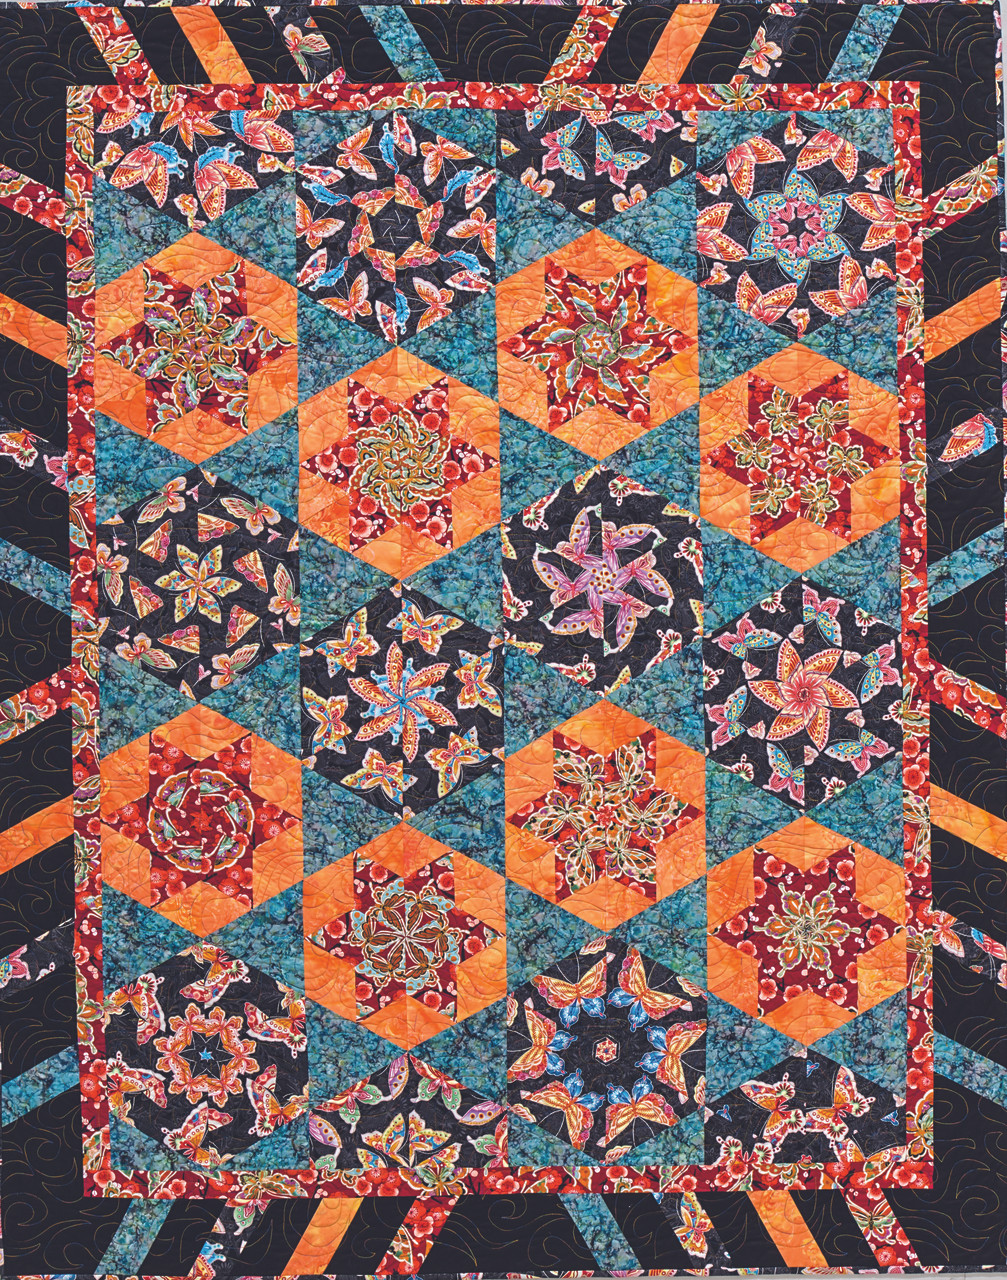 Stack and cut triangles, diamonds, flat pyramids, gem shapes, and more to creating stunning quilts with large-scale fabrics.